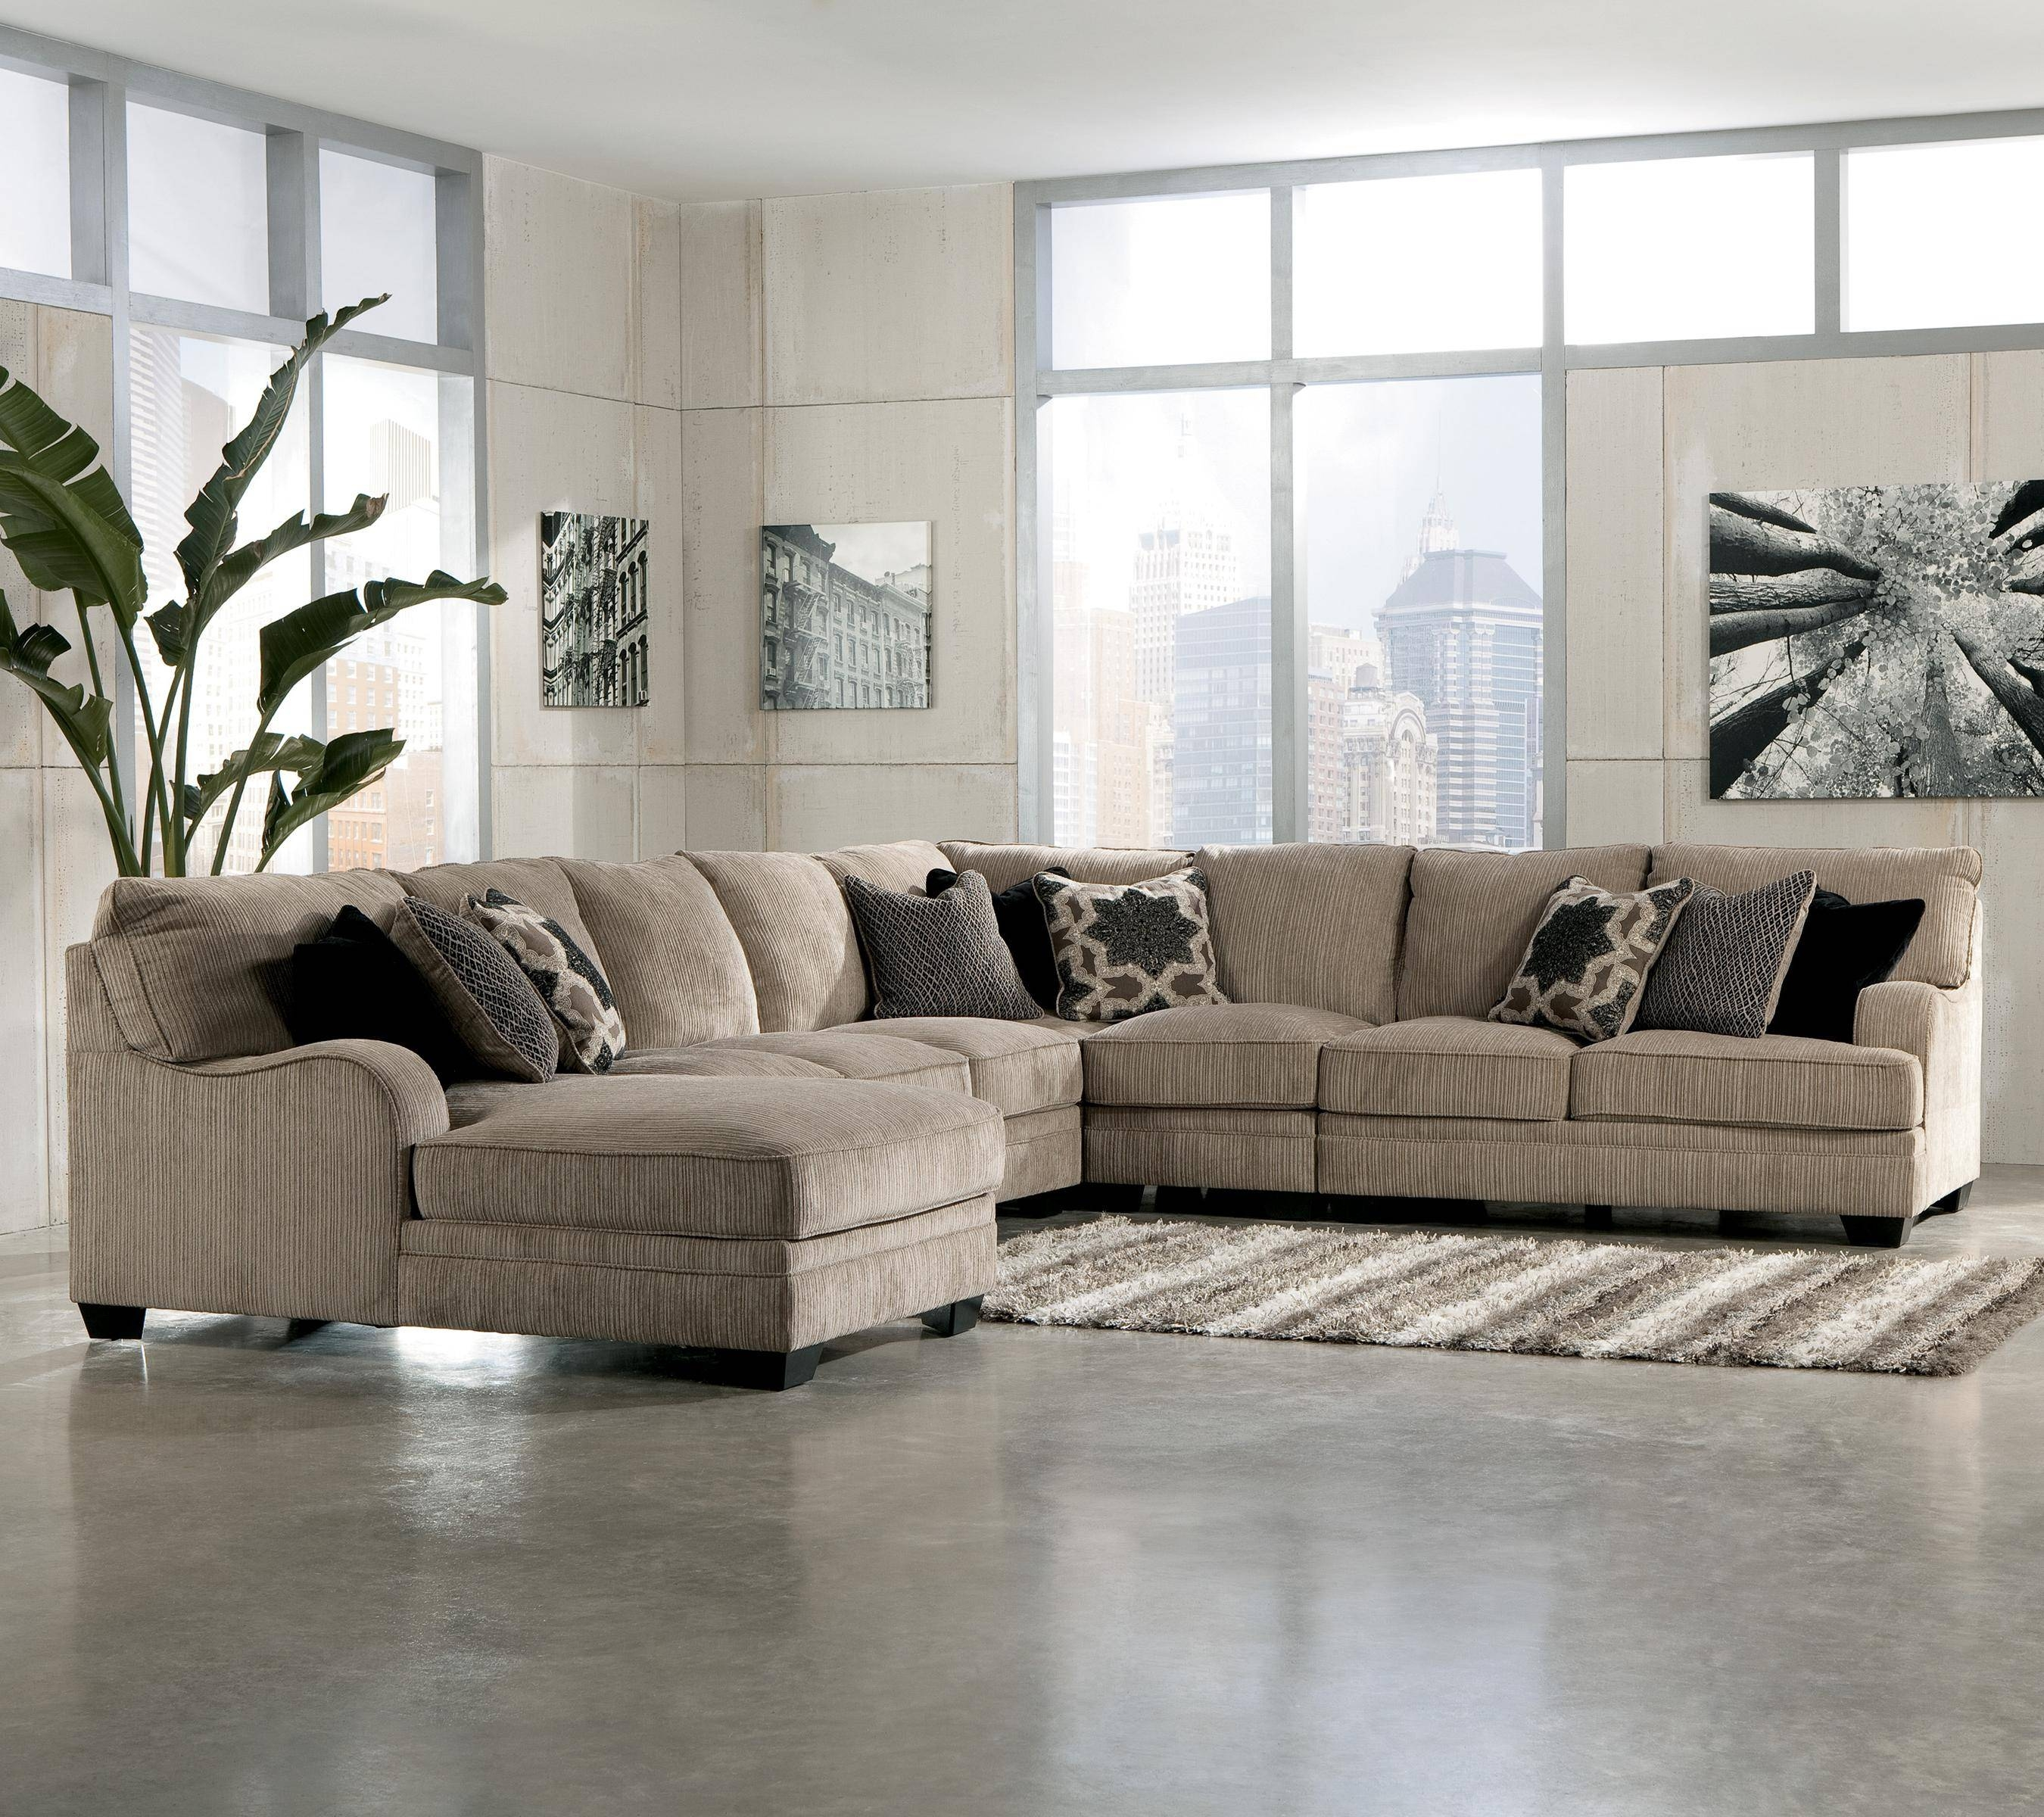 Ashley Furniture Missoula: 30 Best Craigslist Sectional Sofa